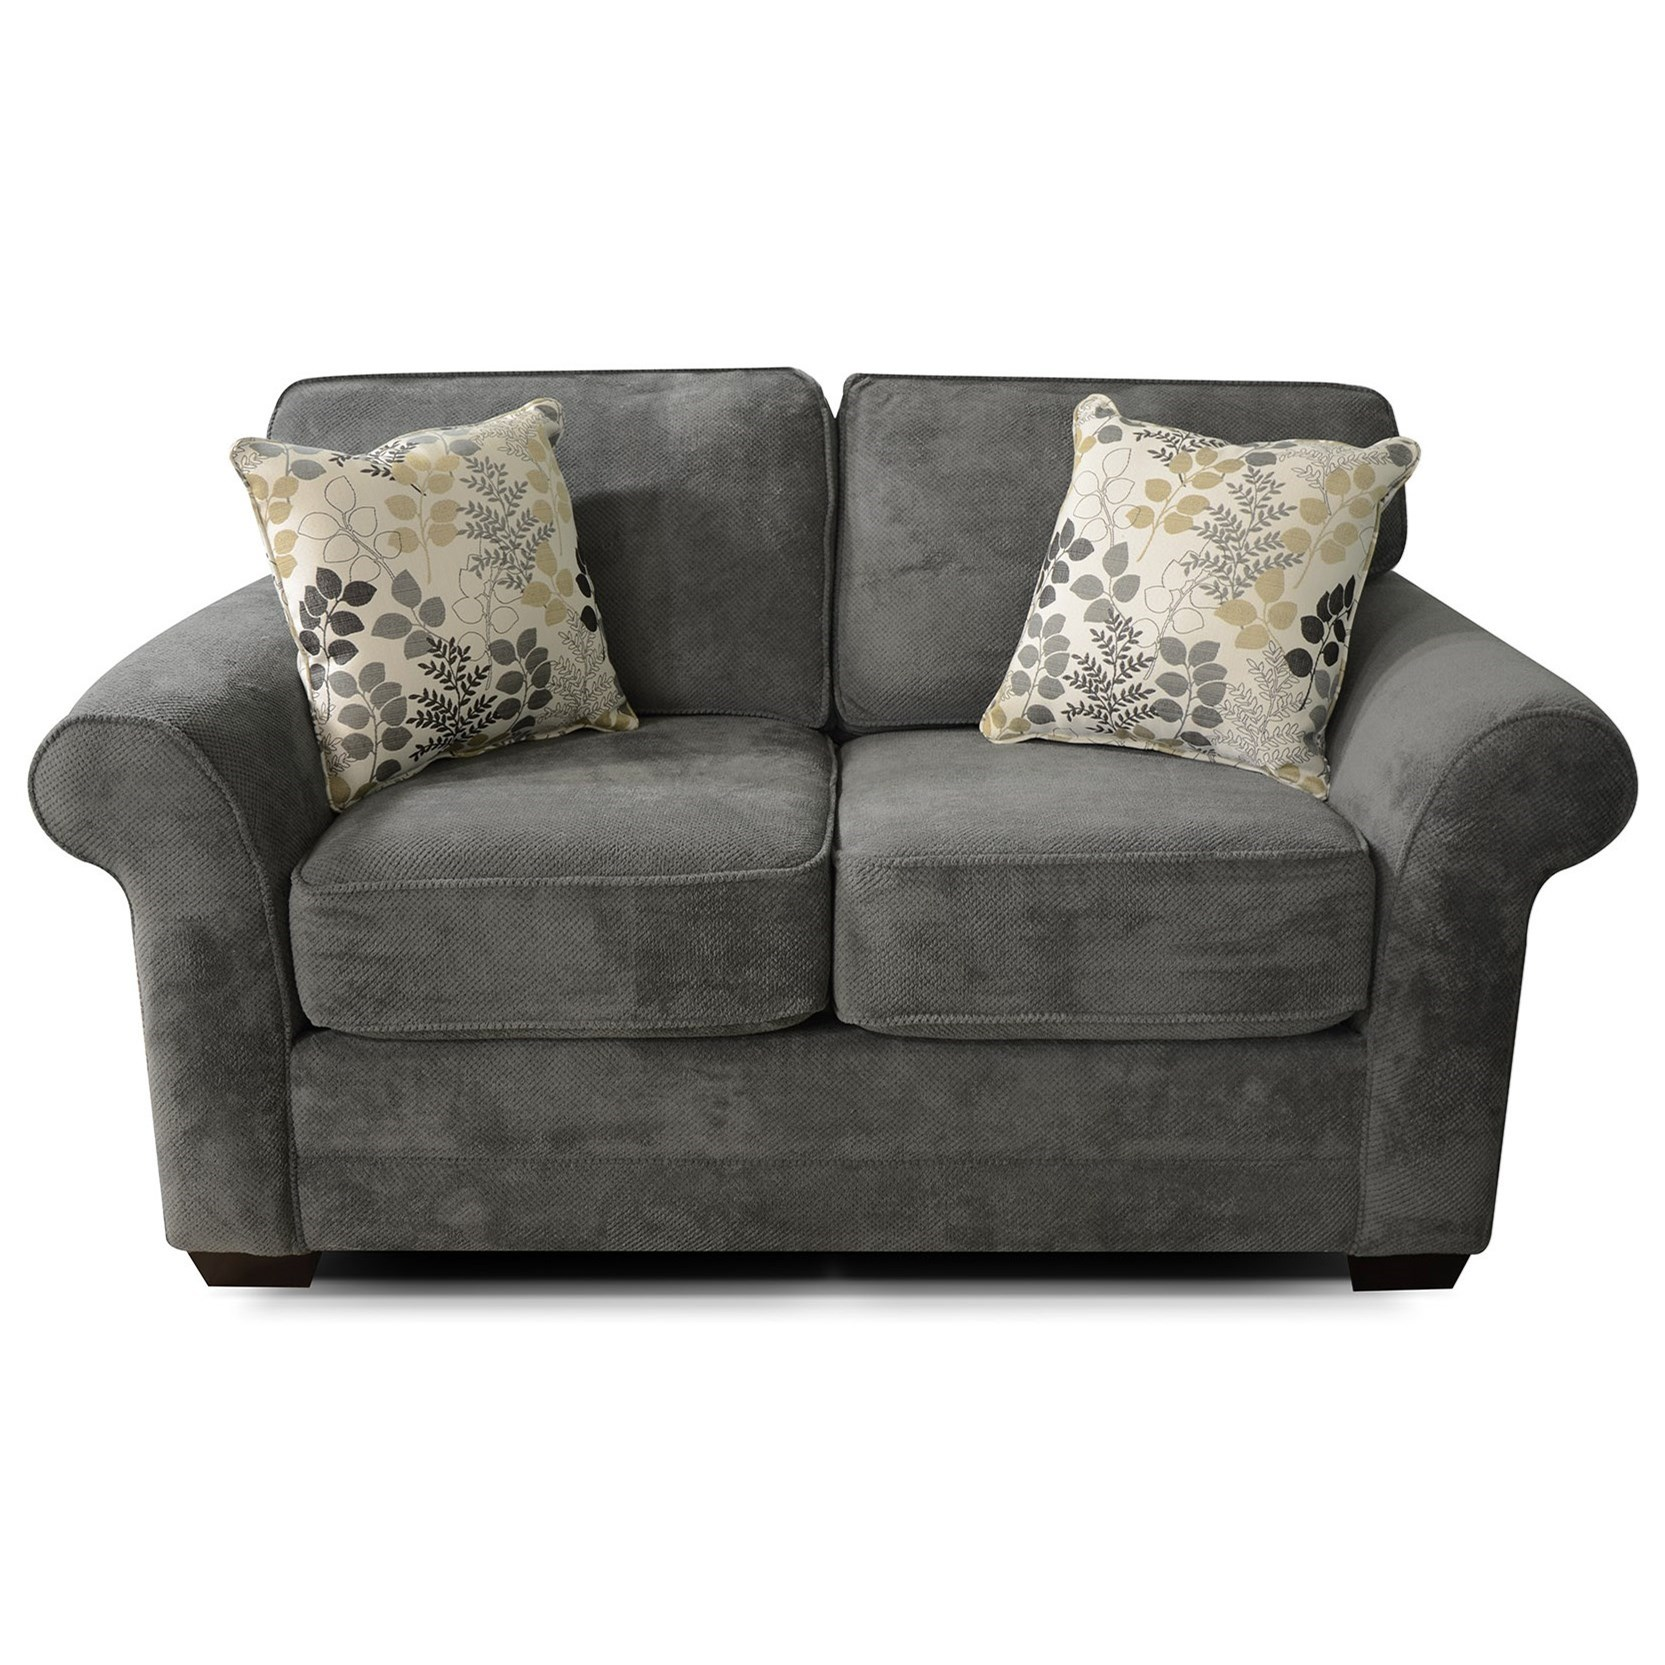 Brantley Loveseat by England at Suburban Furniture